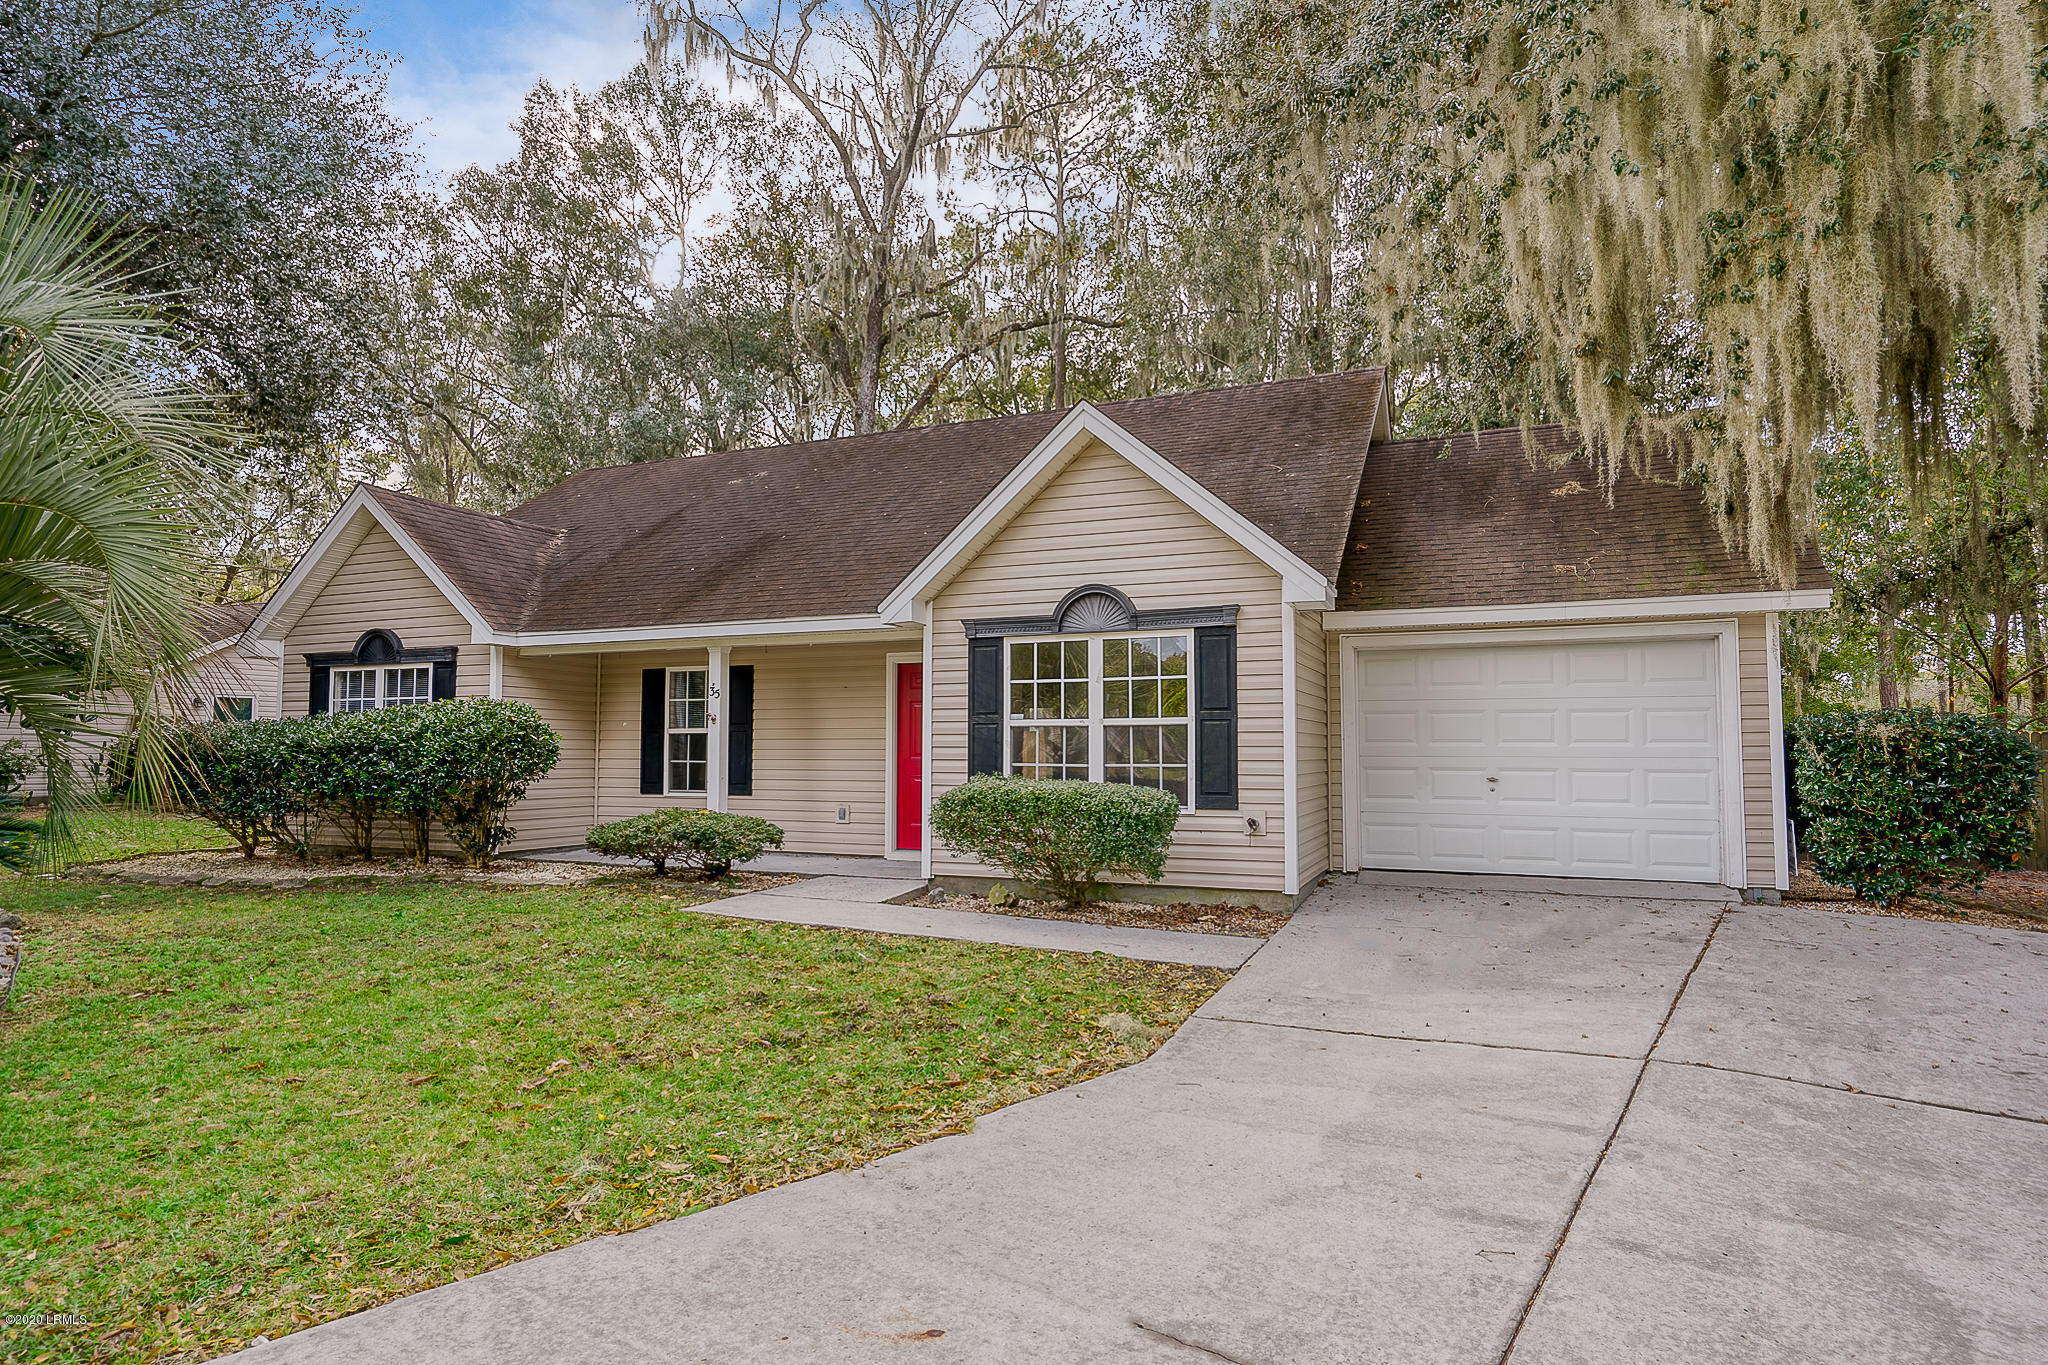 Photo of 35 Ardmore Avenue, Beaufort, SC 29907